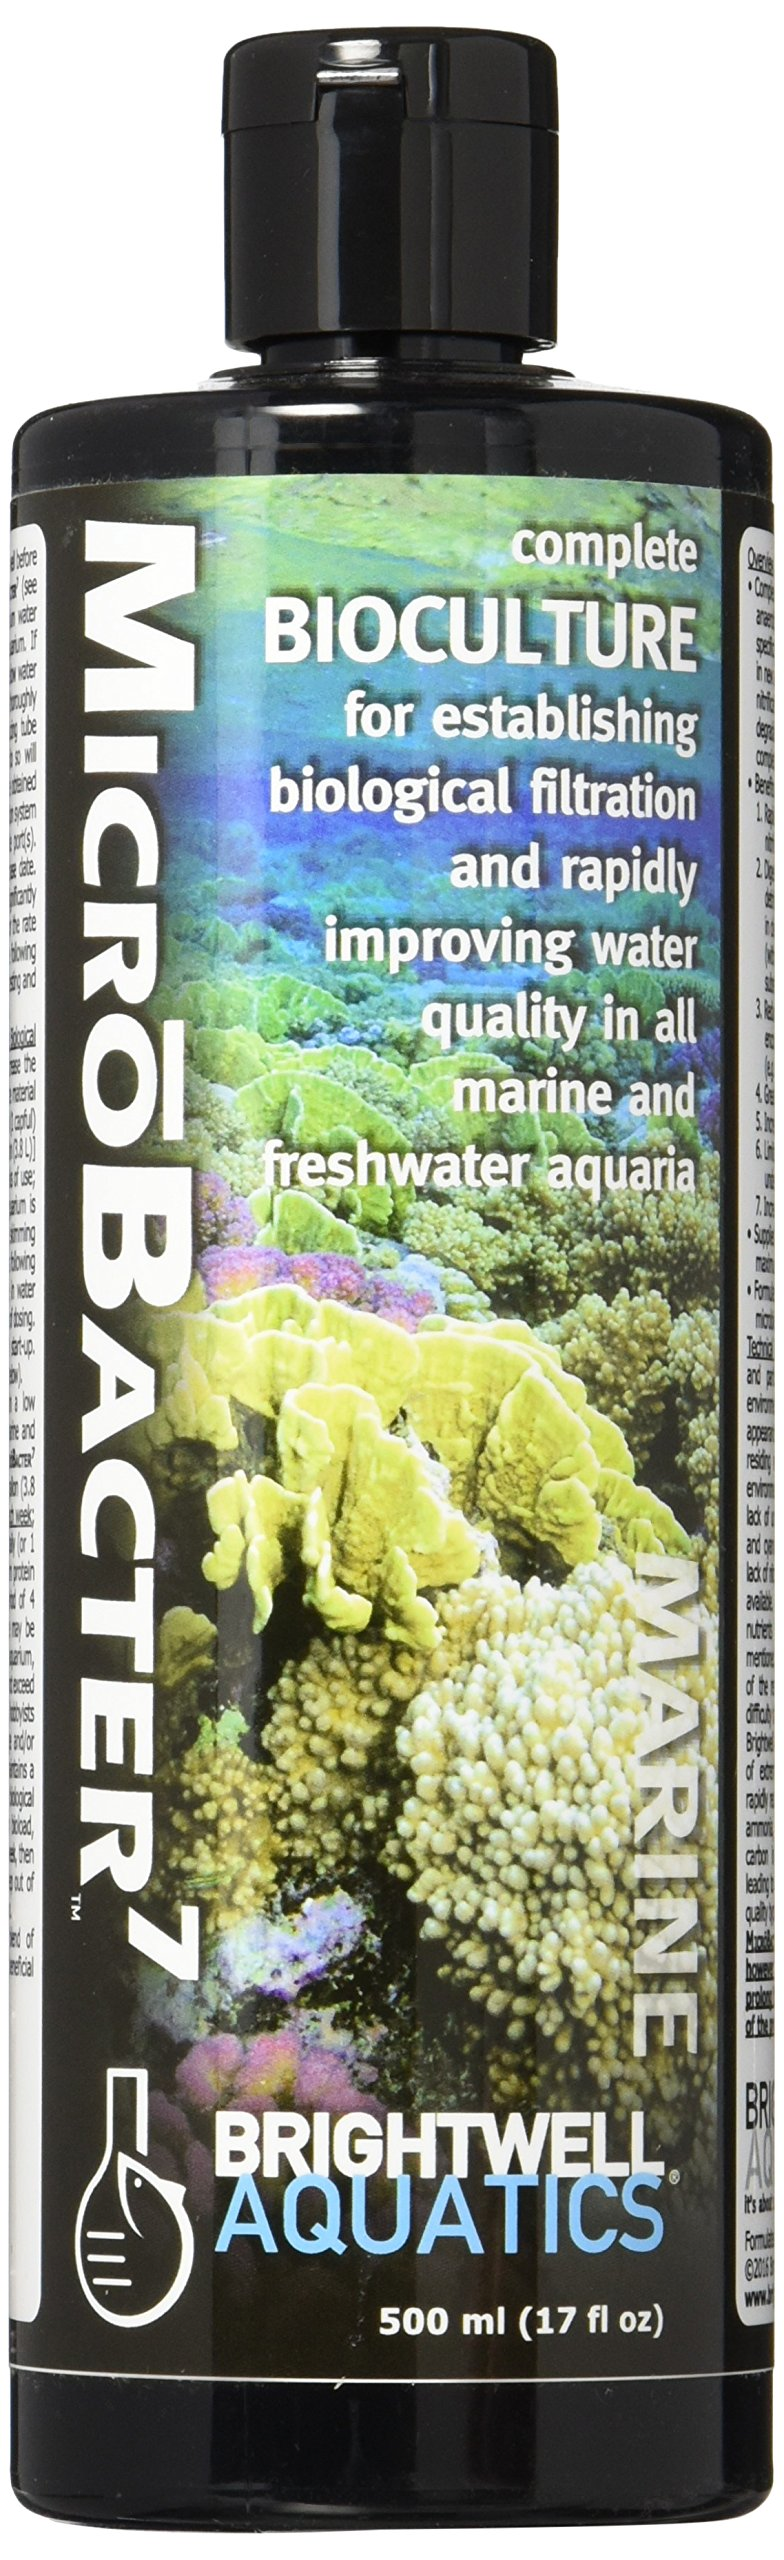 Microbacter7, Renowned Bacteria & Water Conditioner for Fish Tank Or Aquarium, Populates Biological Filter Media for Saltwater & Freshwater Fish, 500ml by Brightwell Aquatics